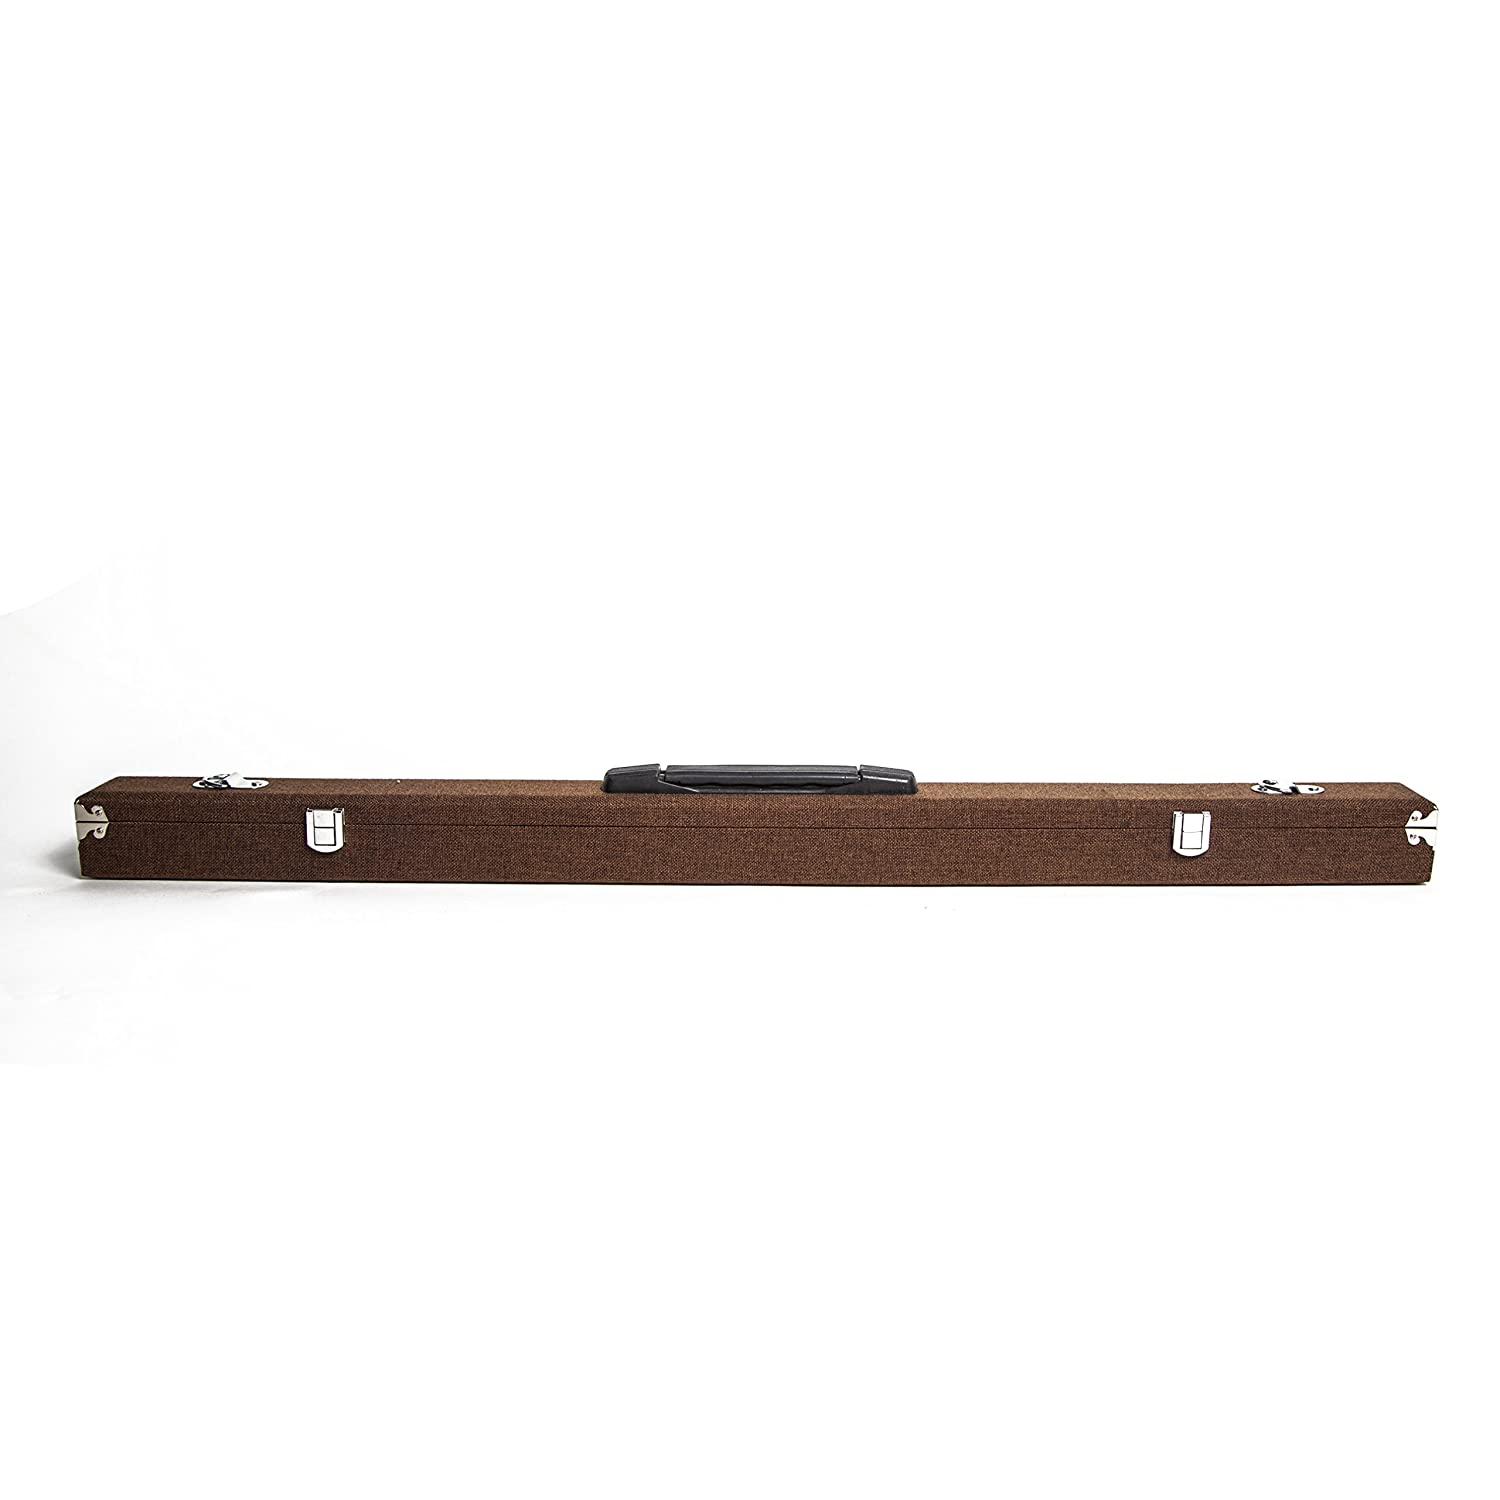 2 Violin//Viola//Cello Bows Strong and Durable SKY High Density Board Bow Case for Two